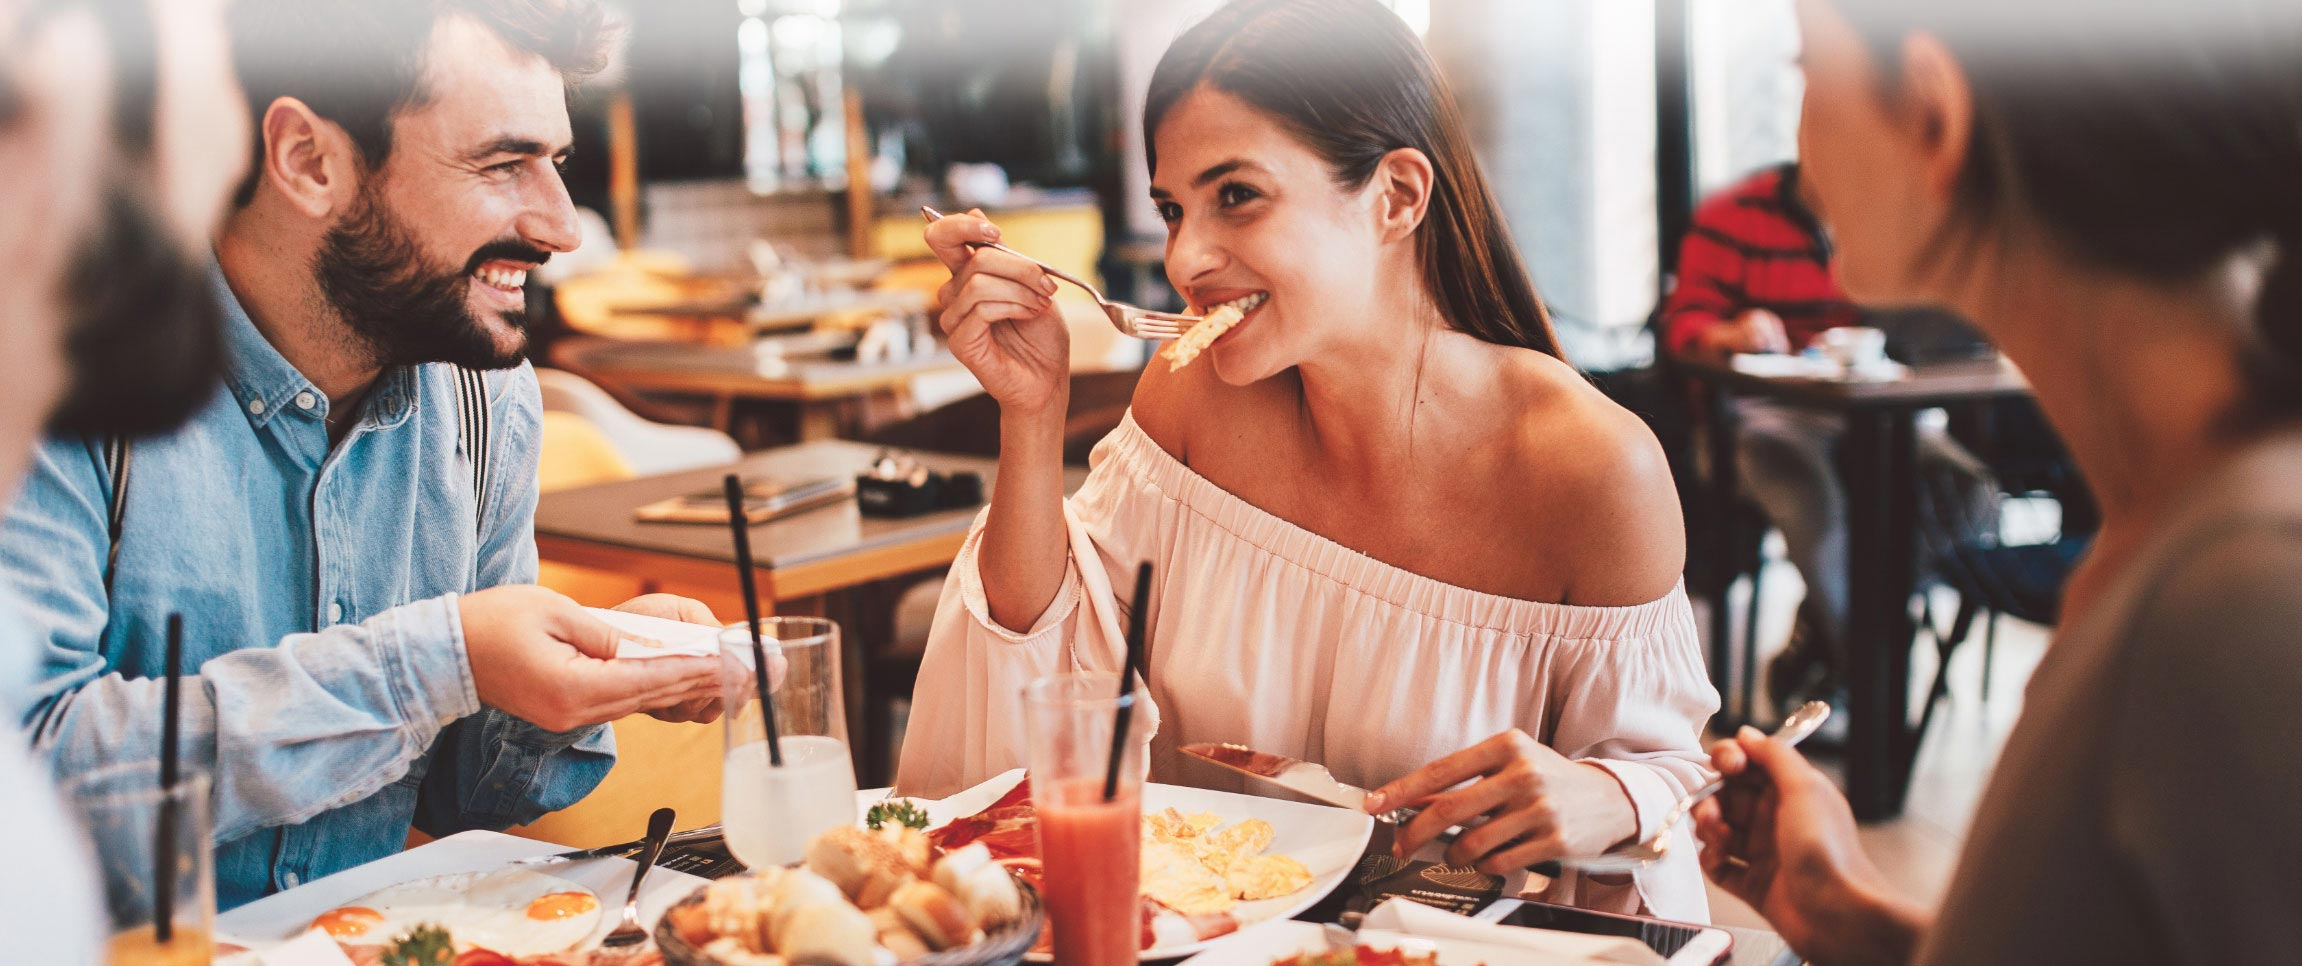 Learn How to Attract Millennials to Your Restaurant